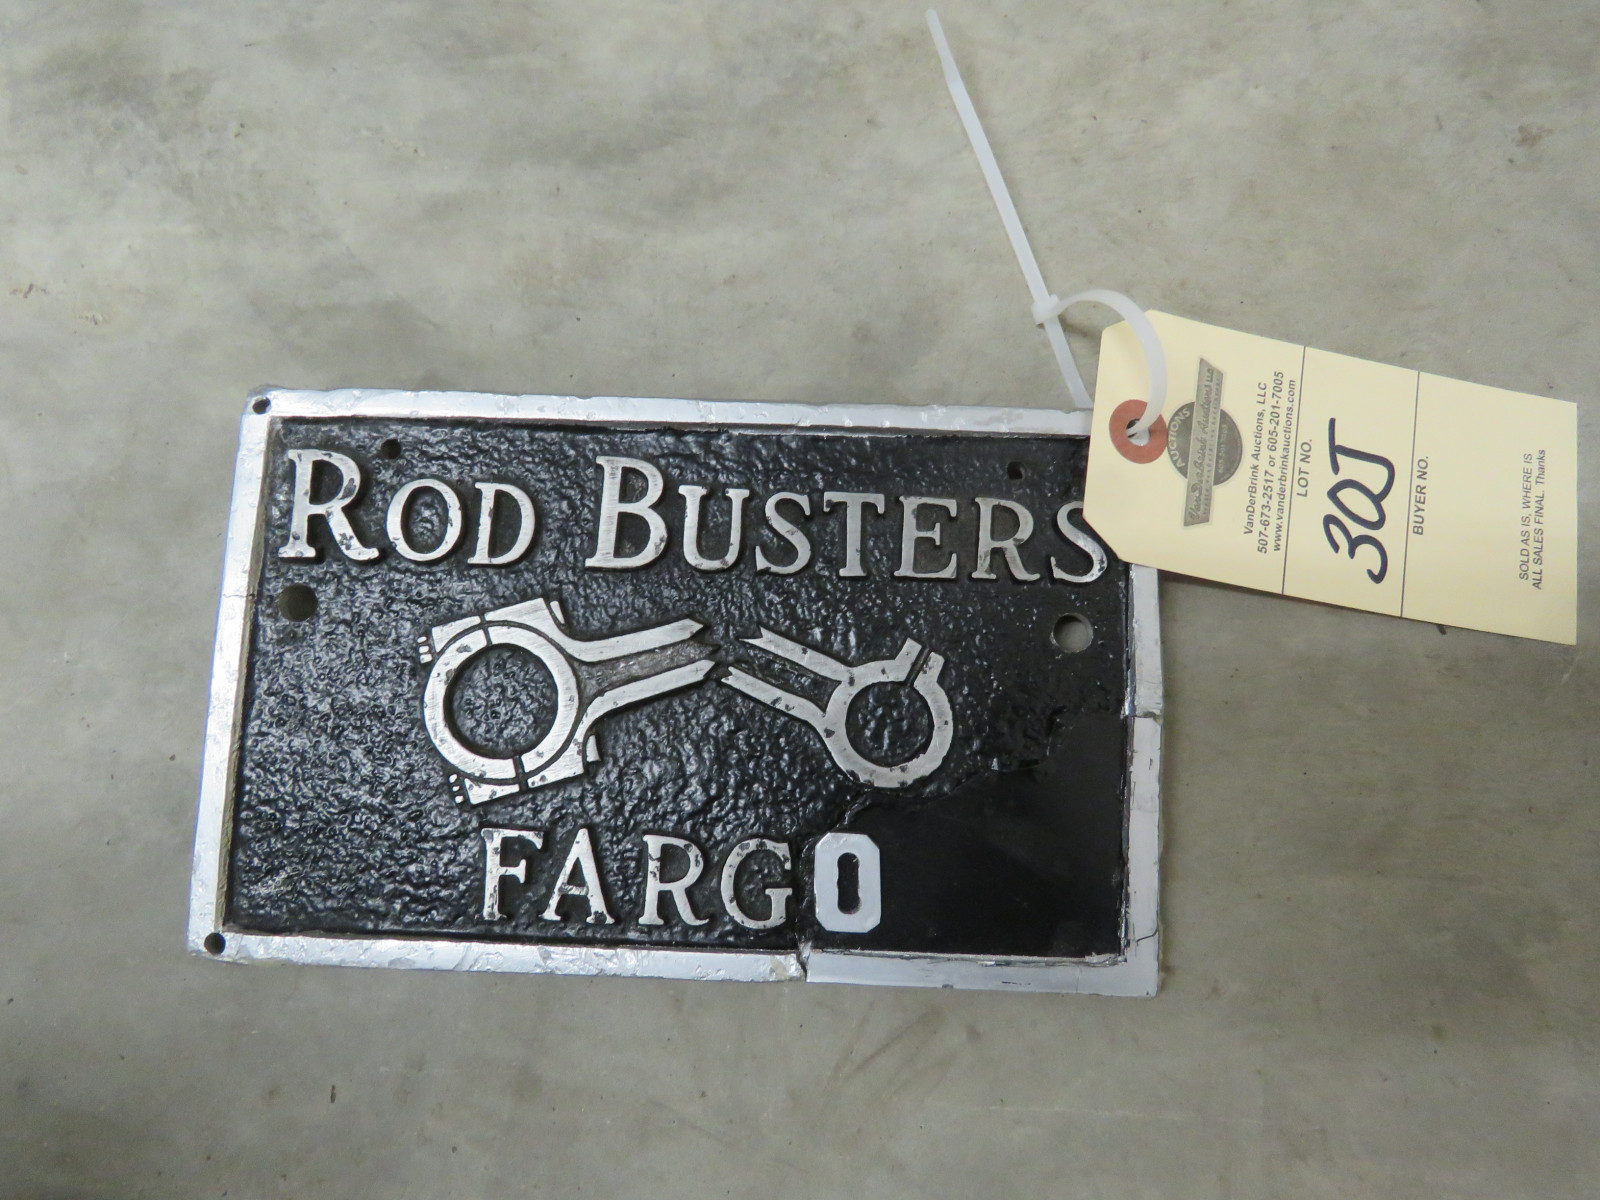 Rod Busters Car Club Plaque from Fargo, ND - Image 1